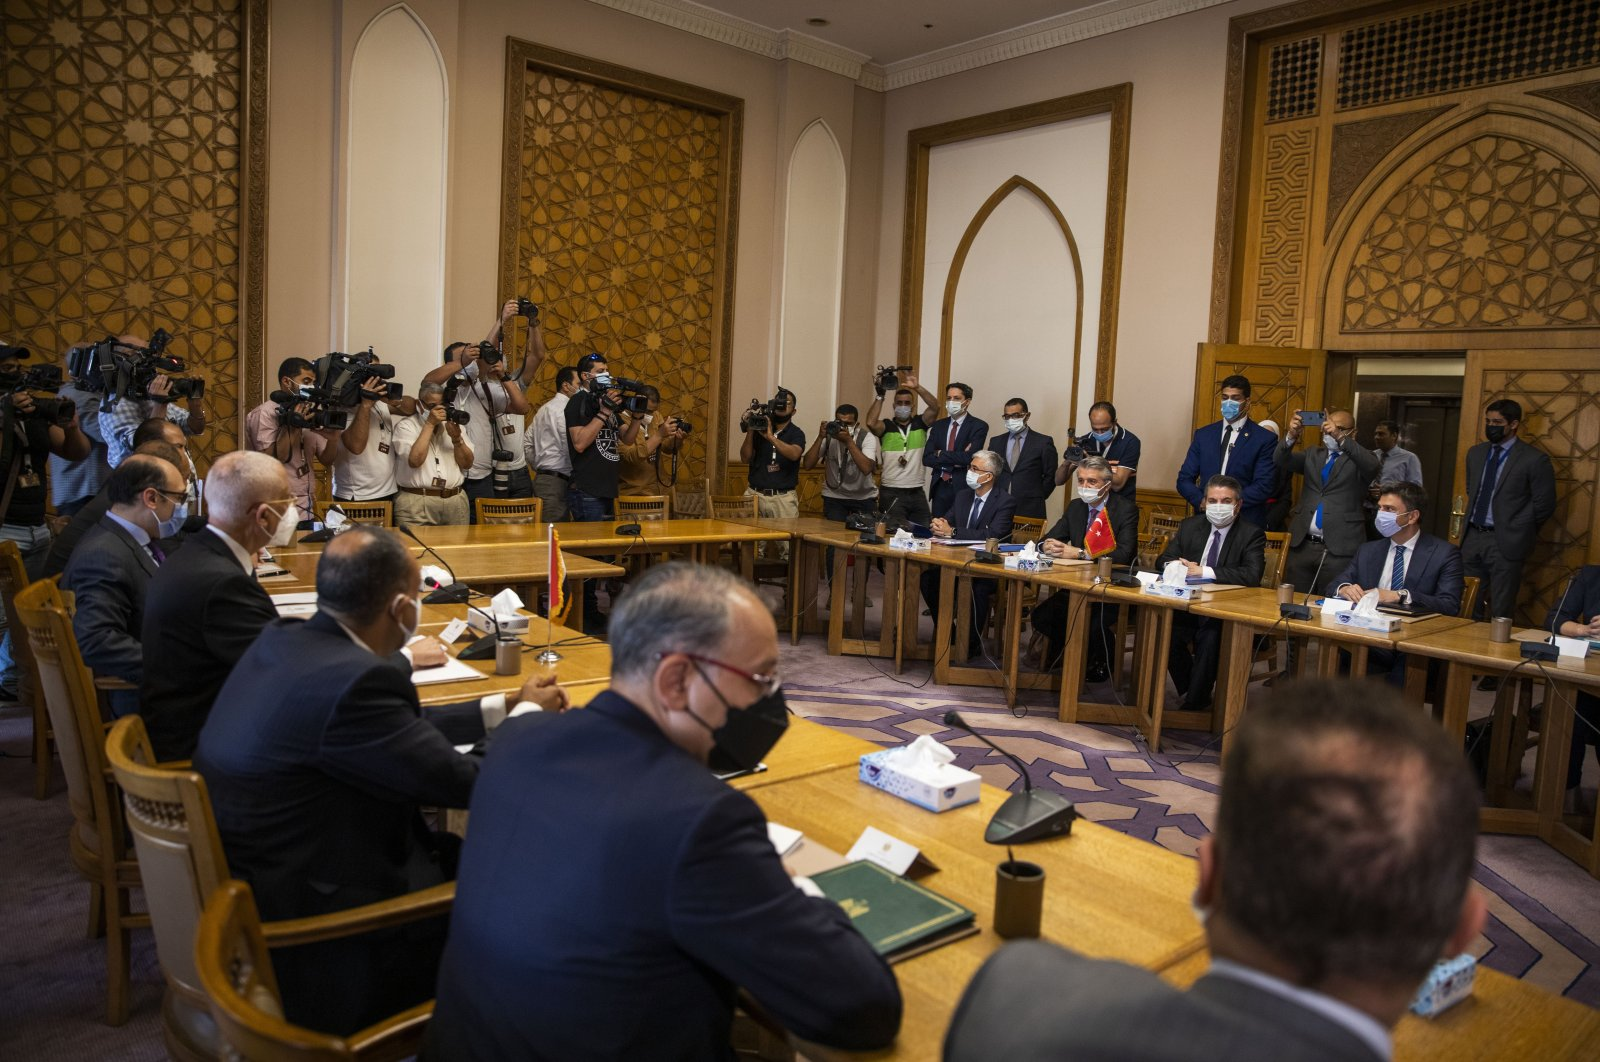 Turkish Deputy Foreign Minister Sedat Önal, seated second right, meets with Hamdi Sanad Loza, Egyptian deputy foreign minister, fourth left, and their delegations, at the foreign ministry in Cairo, Egypt, May 5, 2021. (AP Photo)